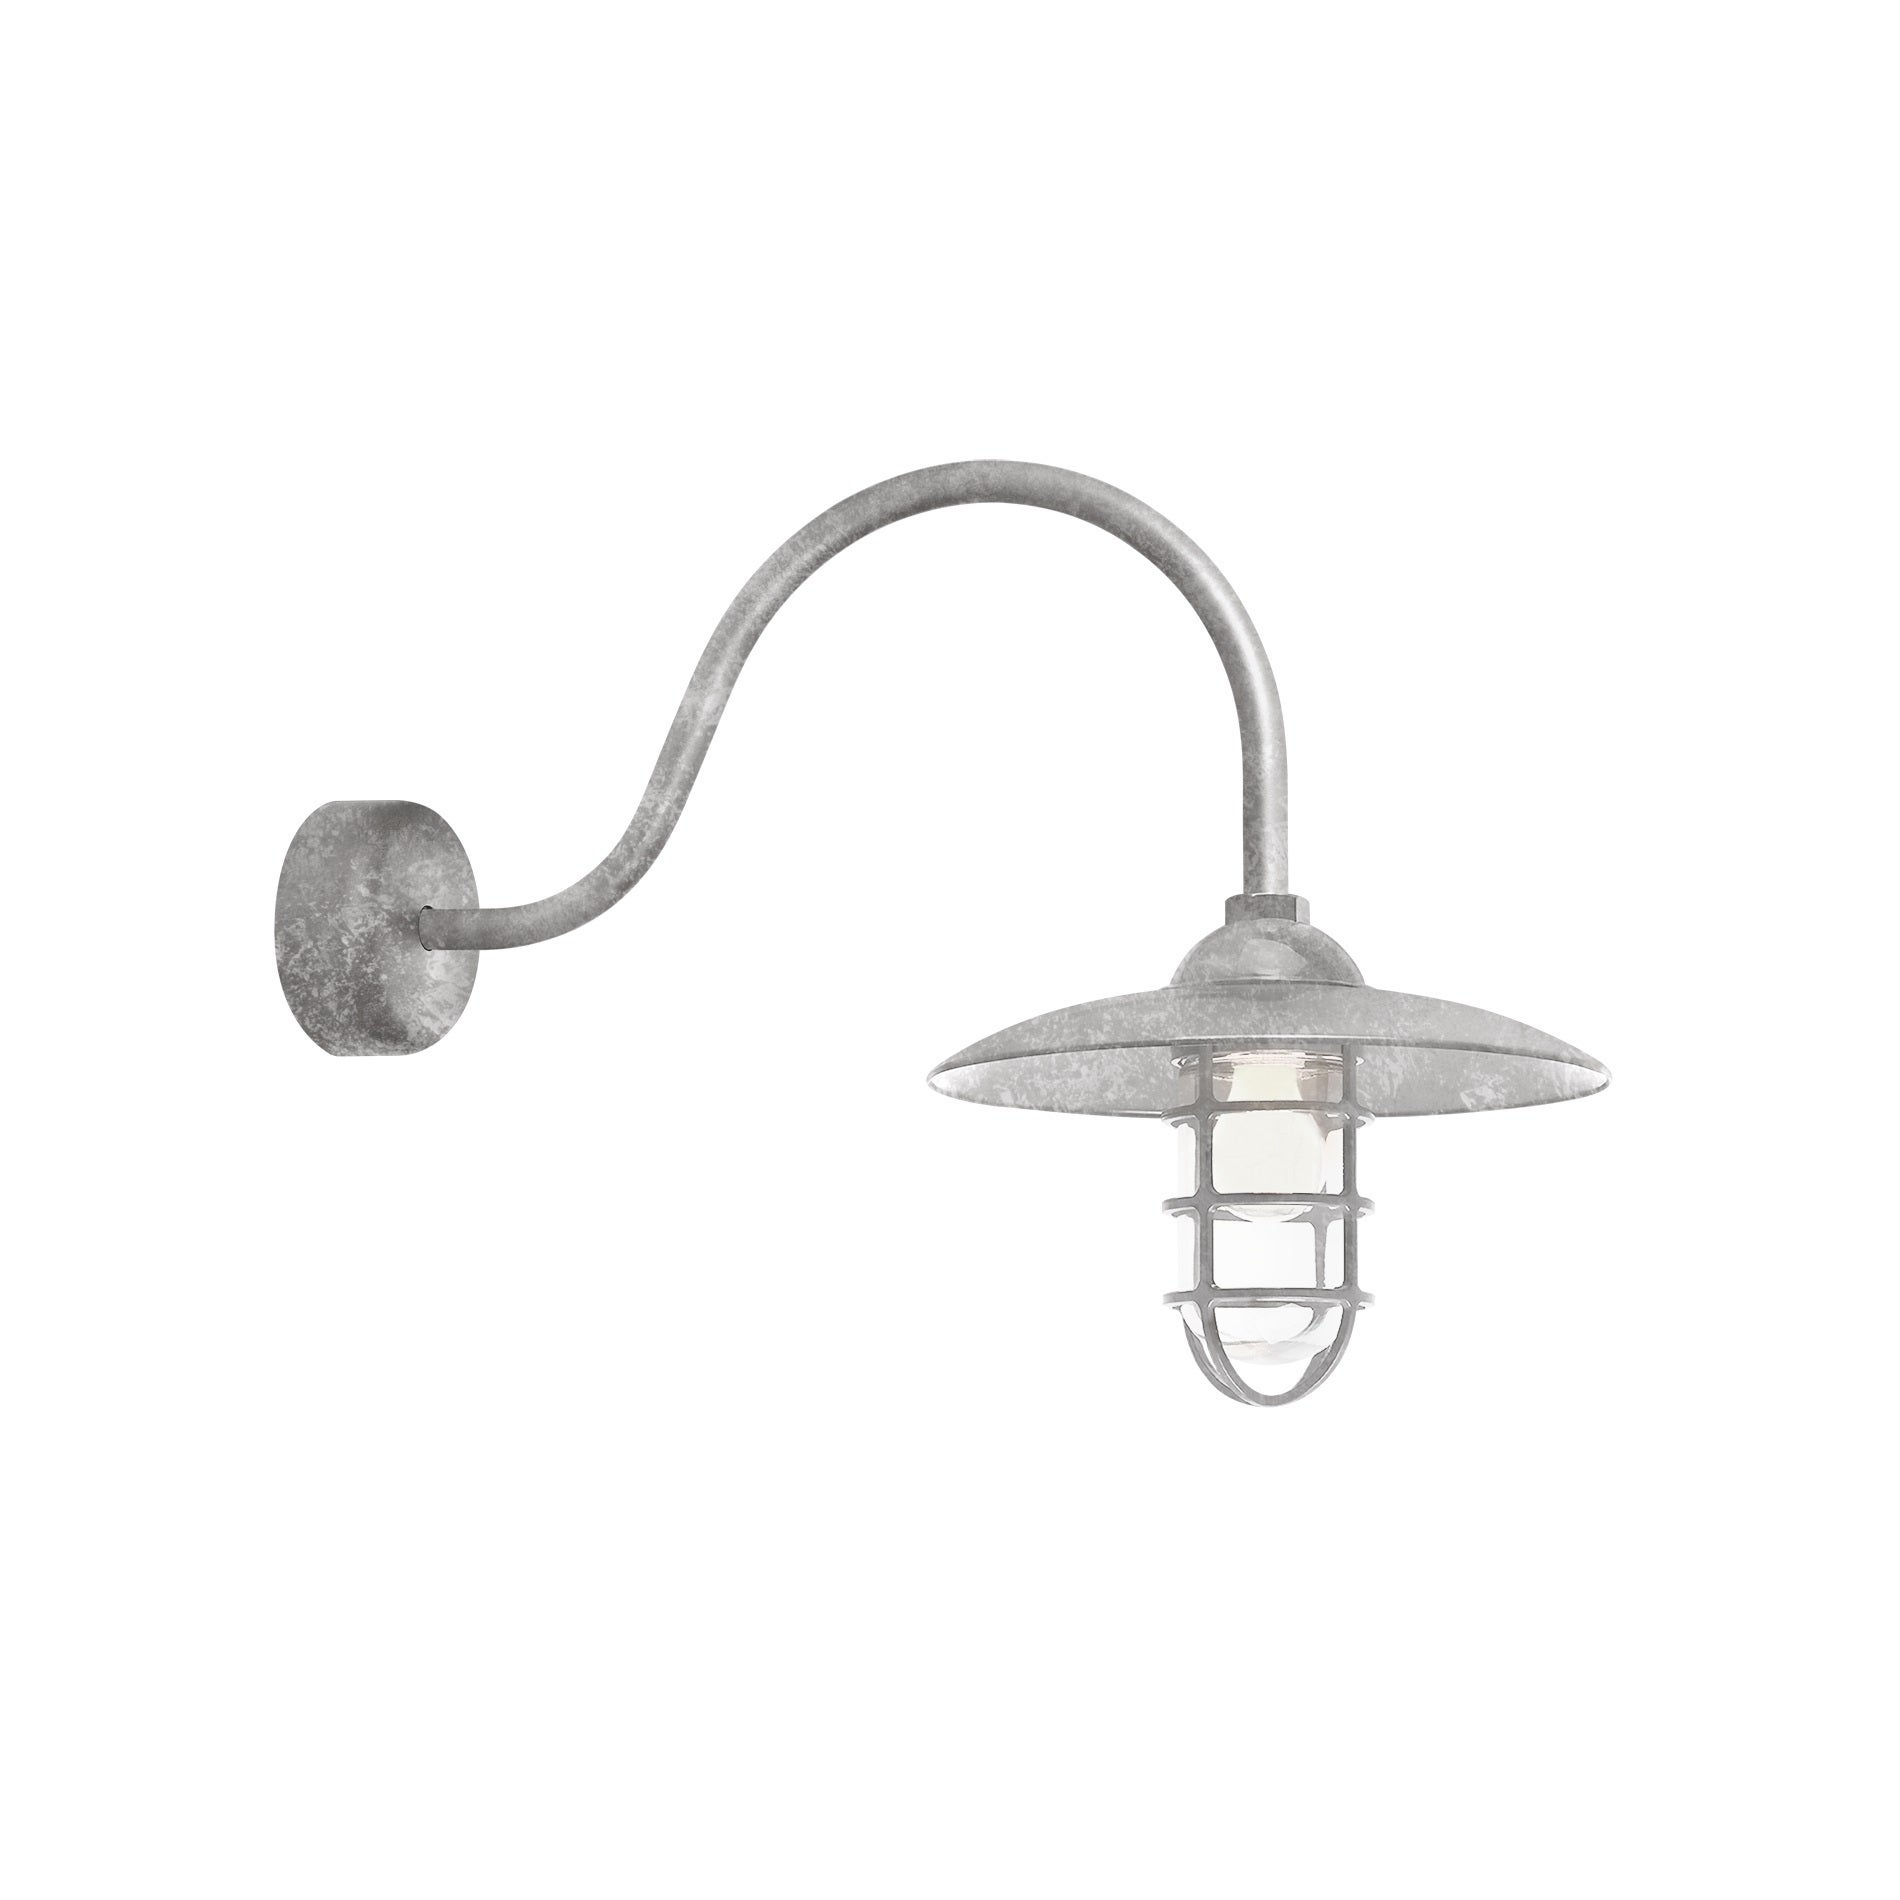 Troy rlm lighting retro industrial galvanized 23 inch arm dome wire troy rlm lighting retro industrial galvanized 23 inch arm dome wire guard wall sconce free shipping today overstock 19495438 arubaitofo Images